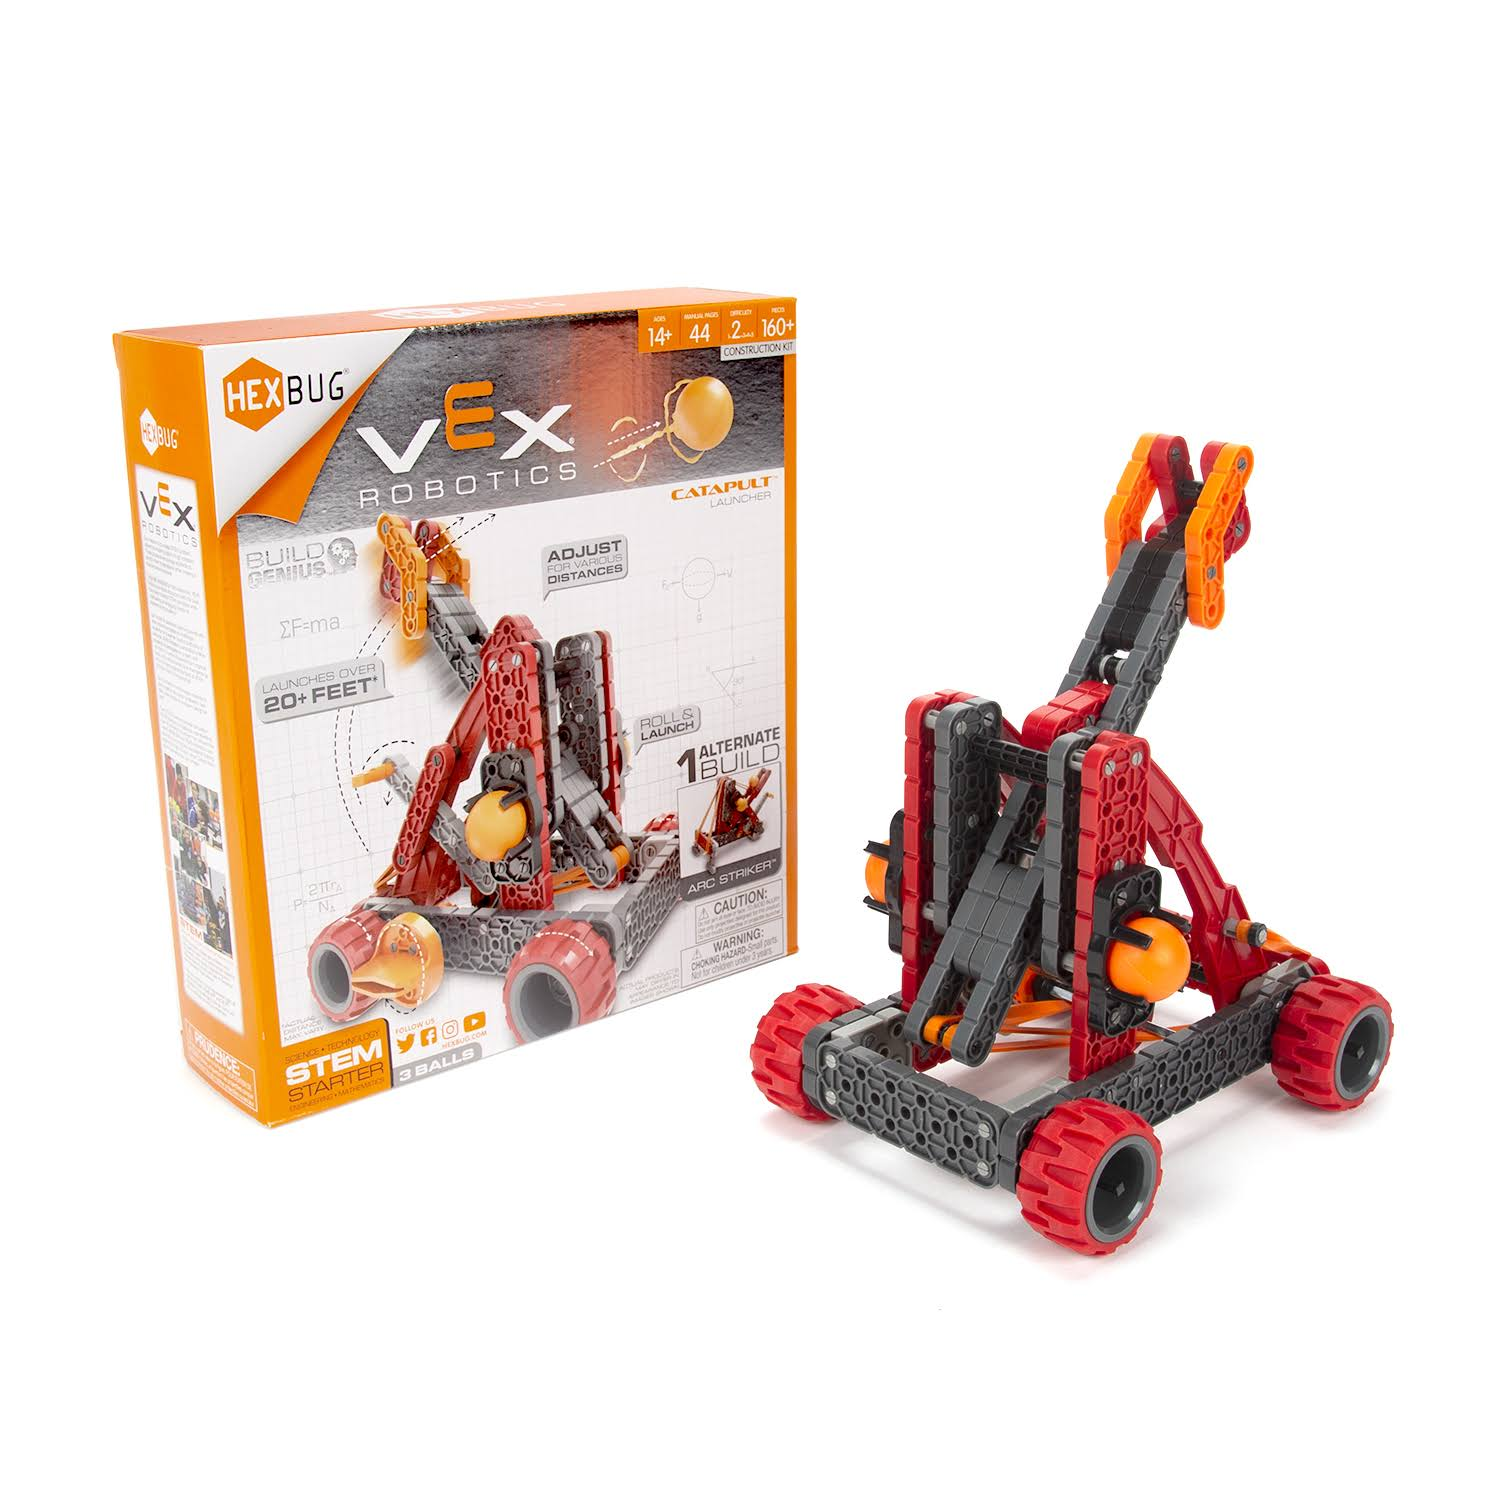 Vex Robotics Catapult 2.0 by Hexbug